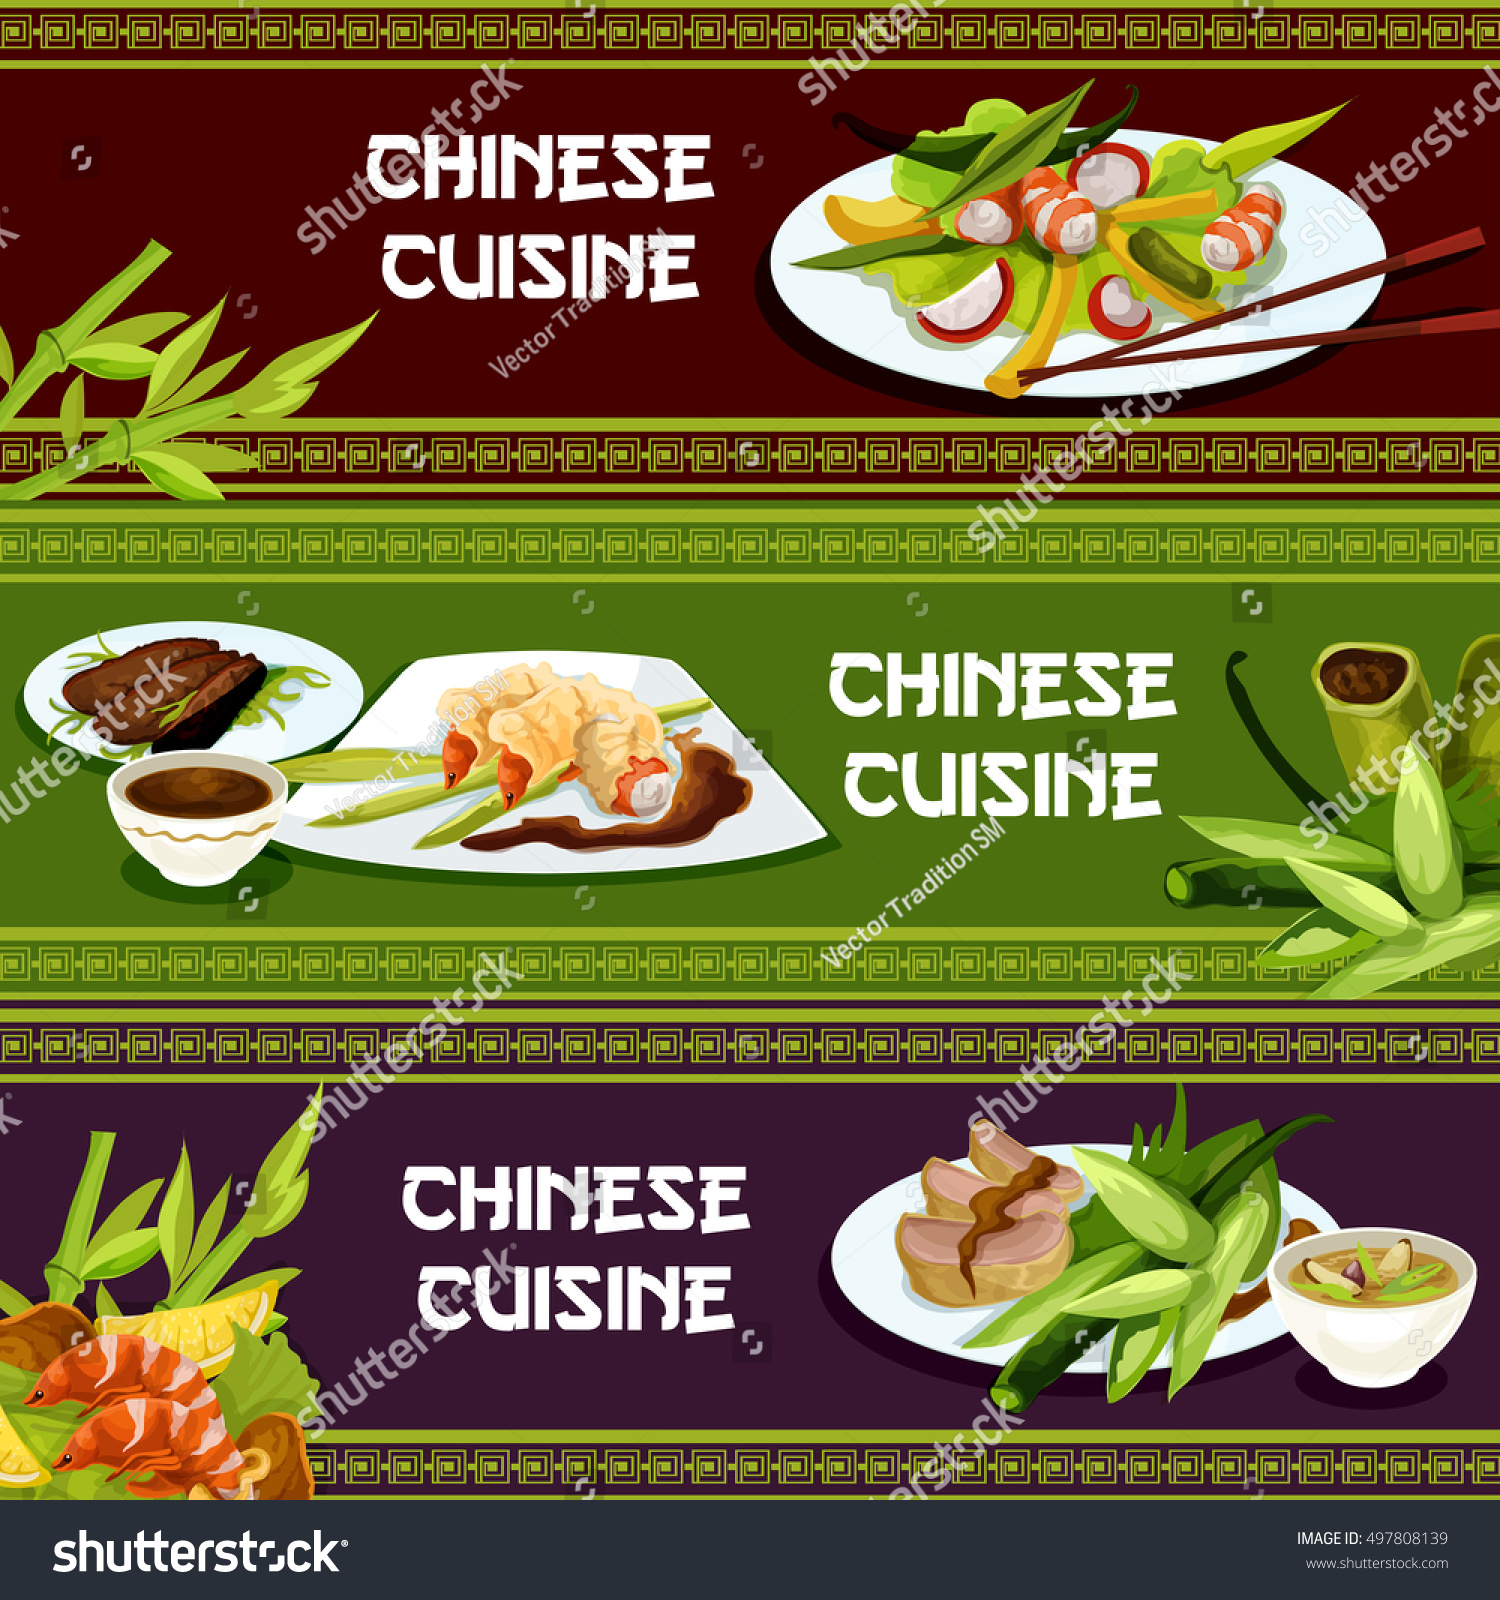 Chinese cuisine restaurant seafood menu banners stock for Asia cuisine menu